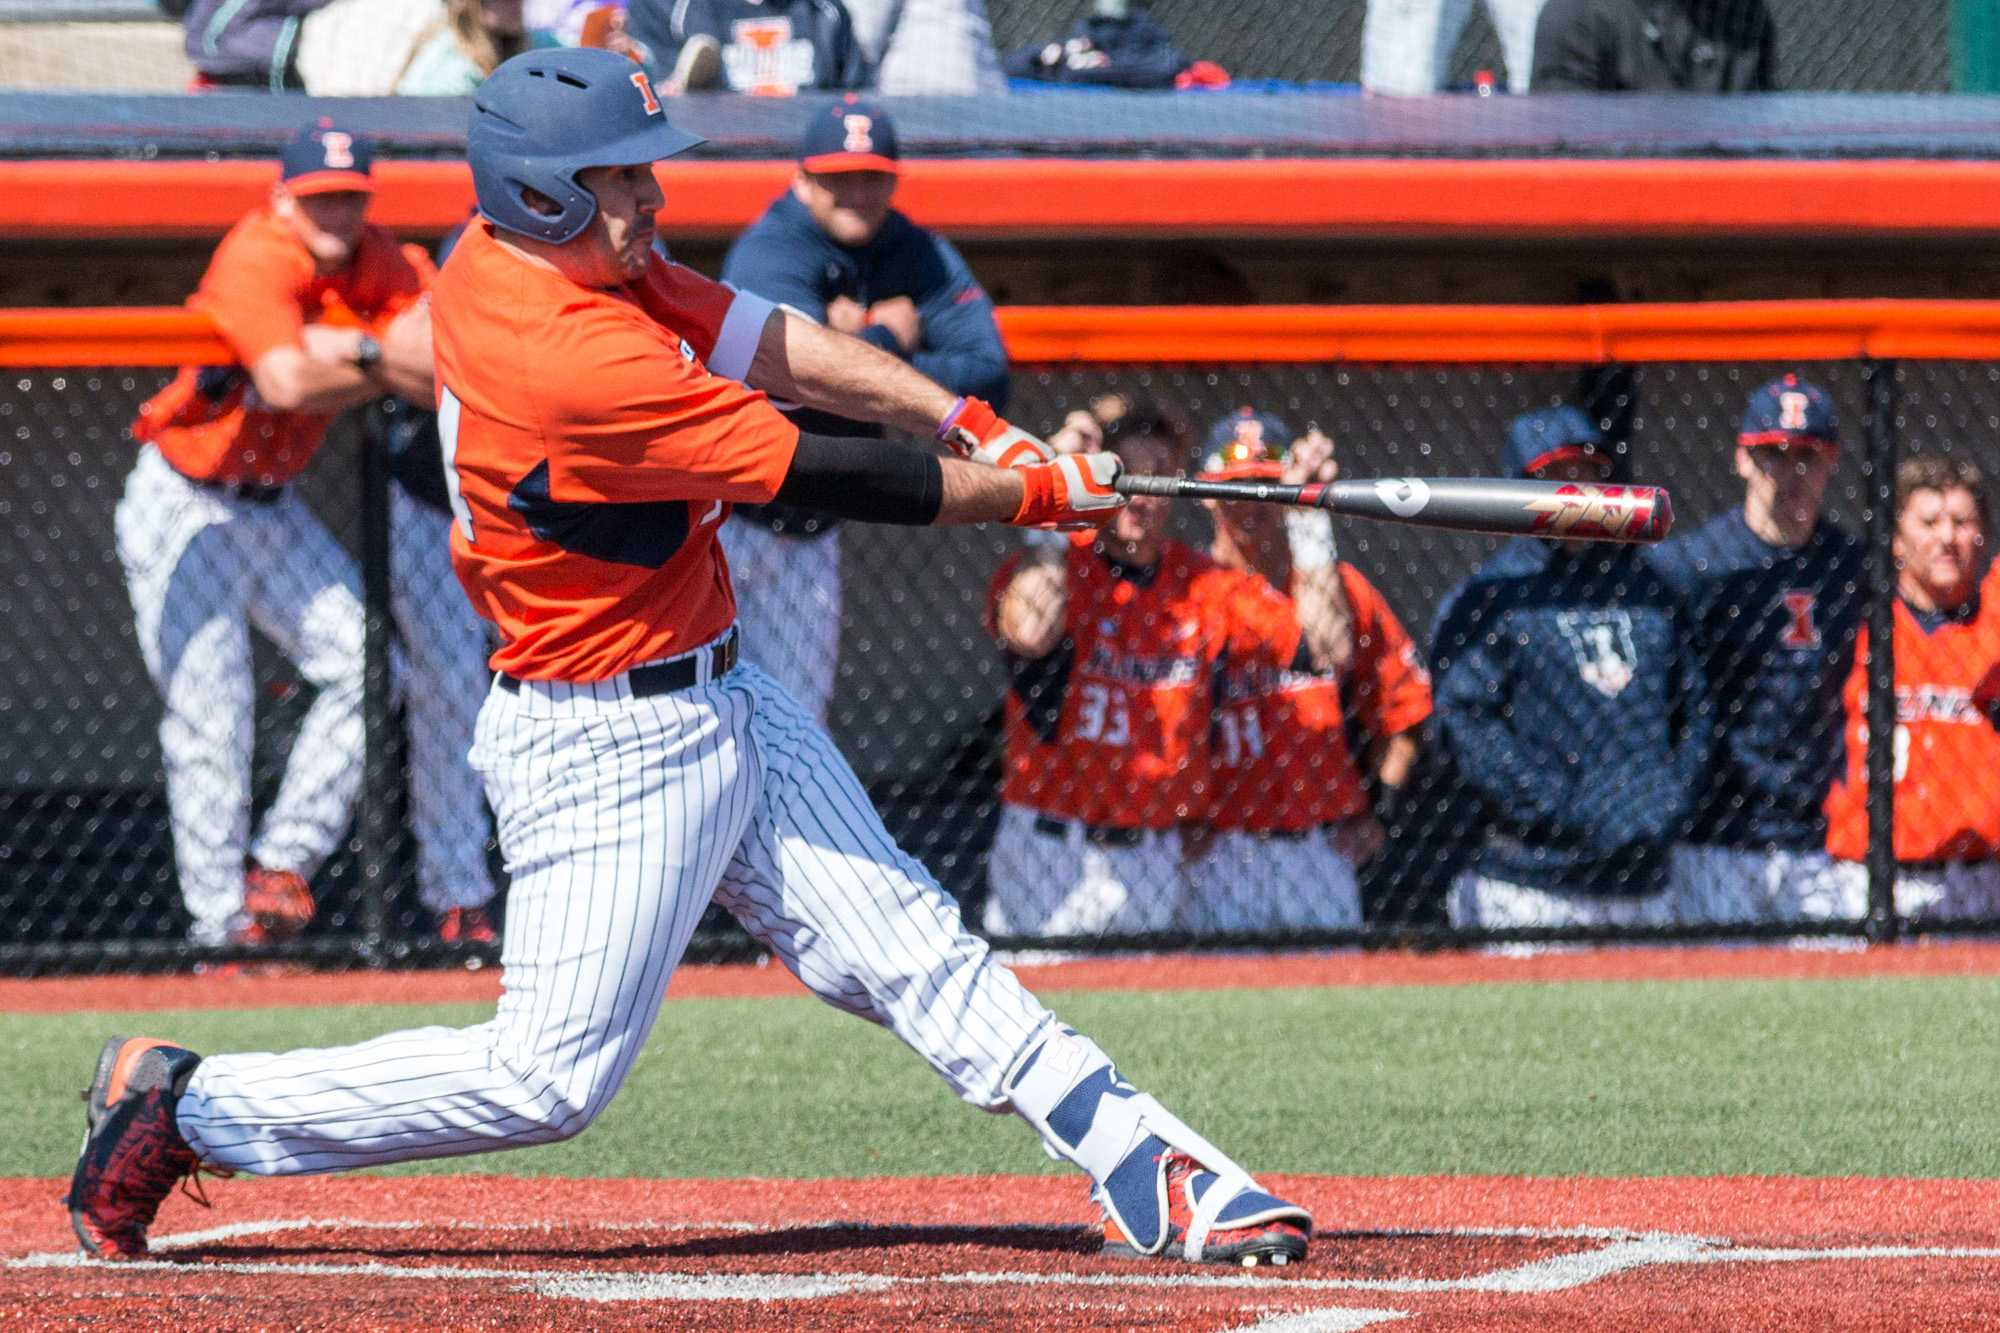 Illinois' Jason Goldstein hits a solo home run to left field  during game one of the team's doubleheader against Penn State at Illini Field on Saturday, March 26. The Illini won game one 6-1 and lost game two 5-3.